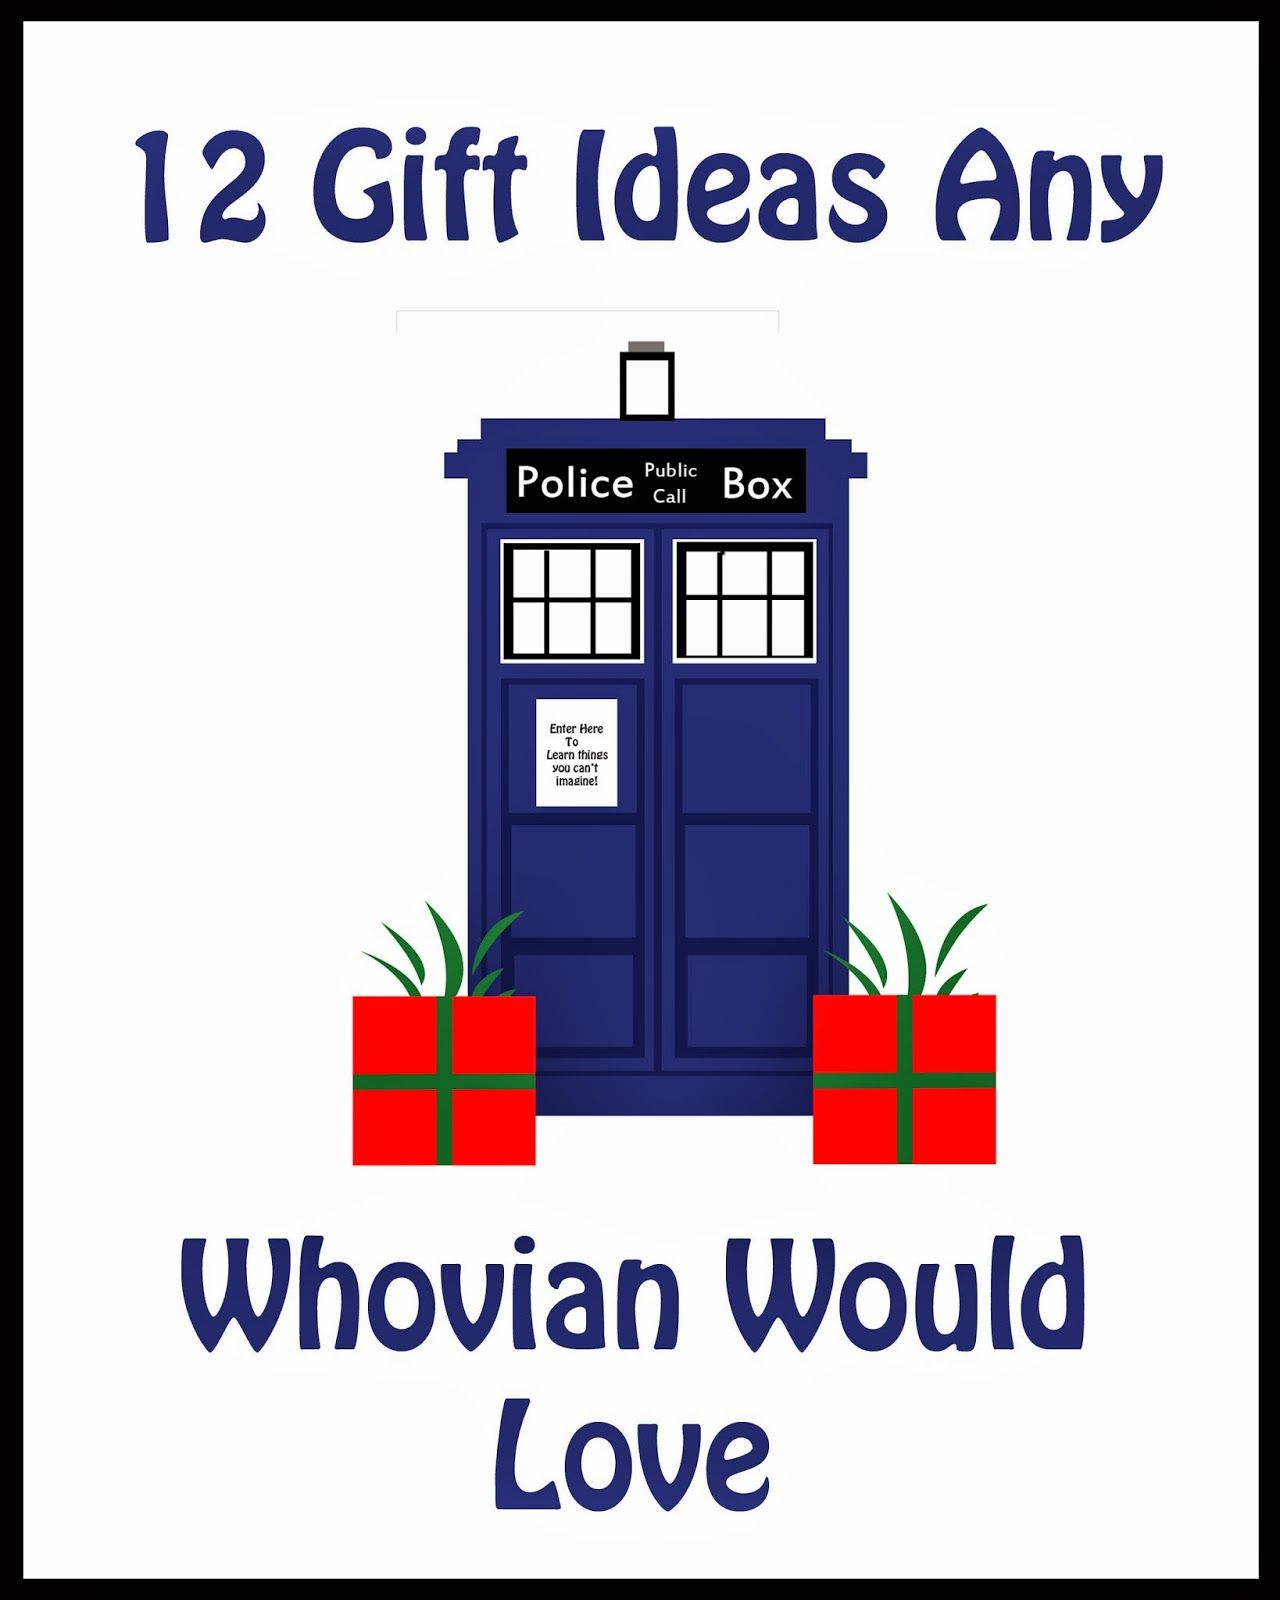 12 gifts any whovian would love perfect gifts for the doctor who fan in your life